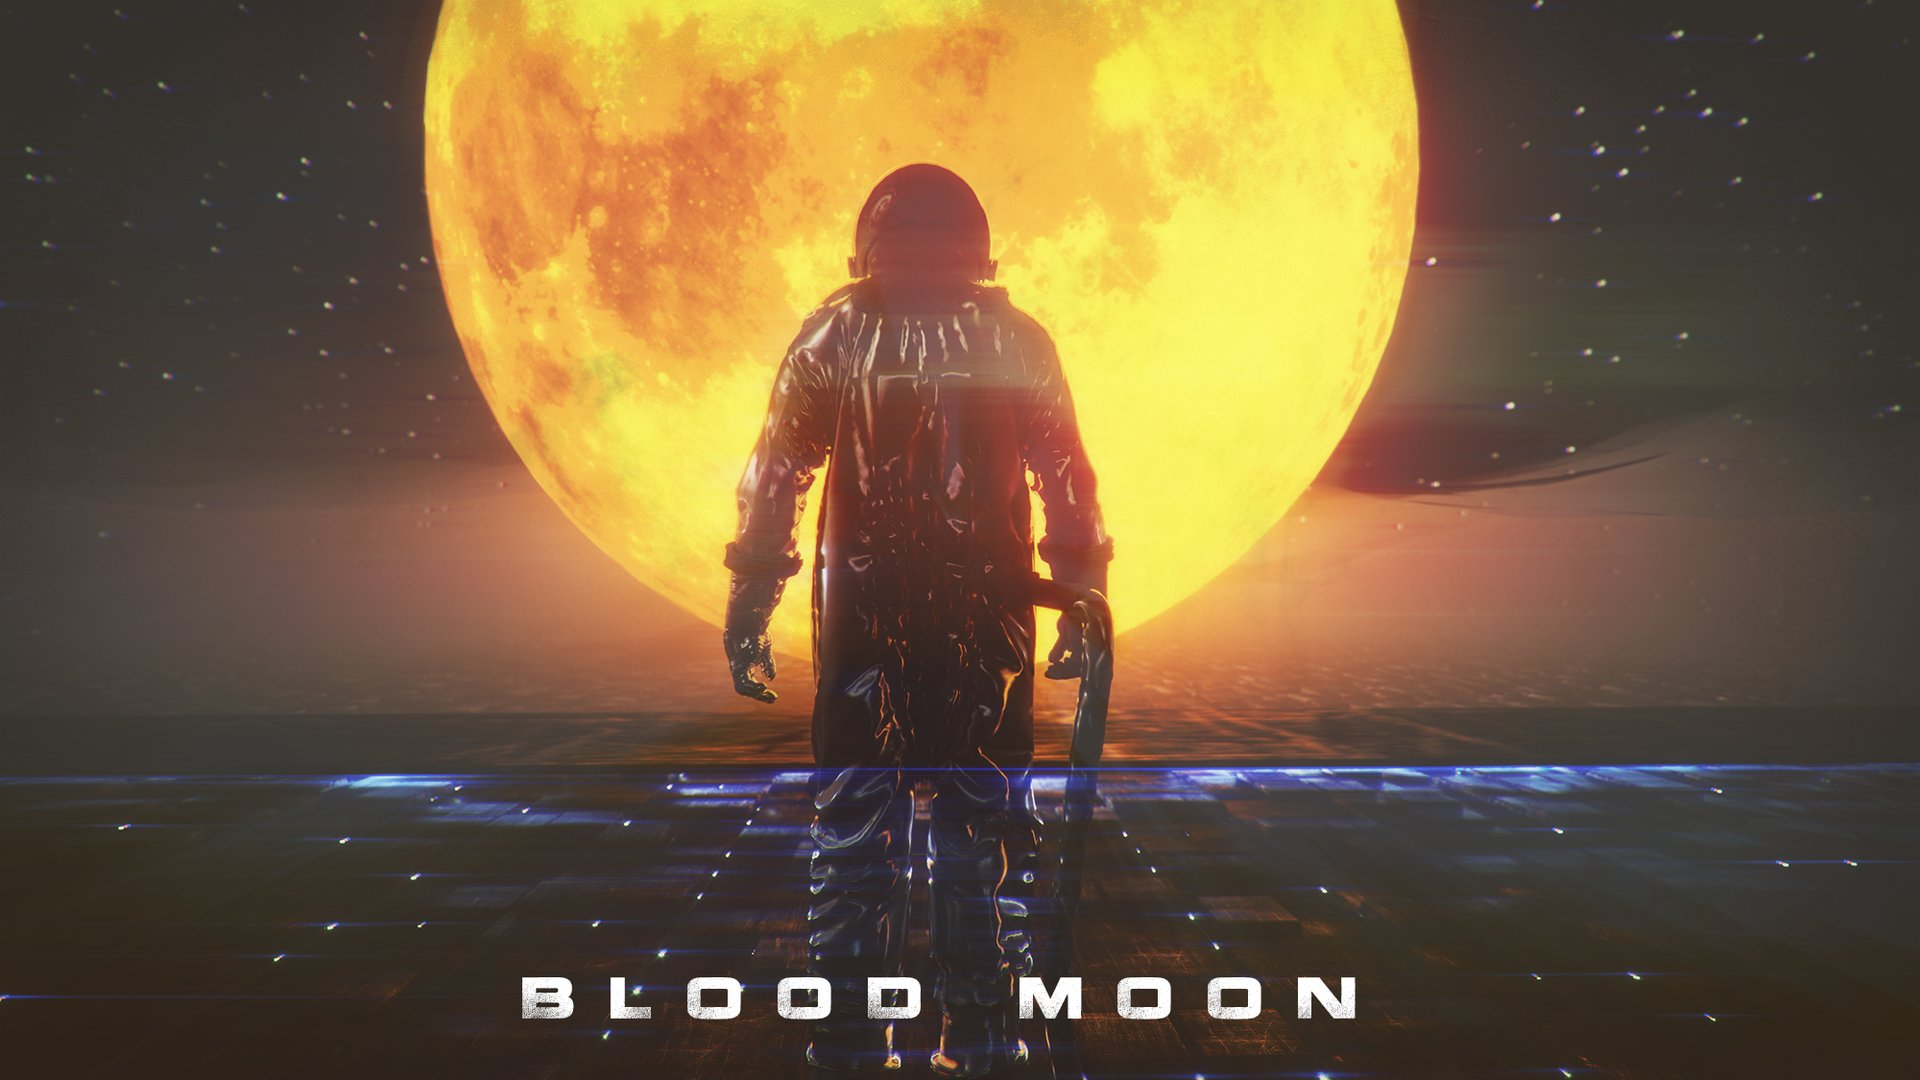 Kresimir jelusic blood moon ae 16x9 movie title